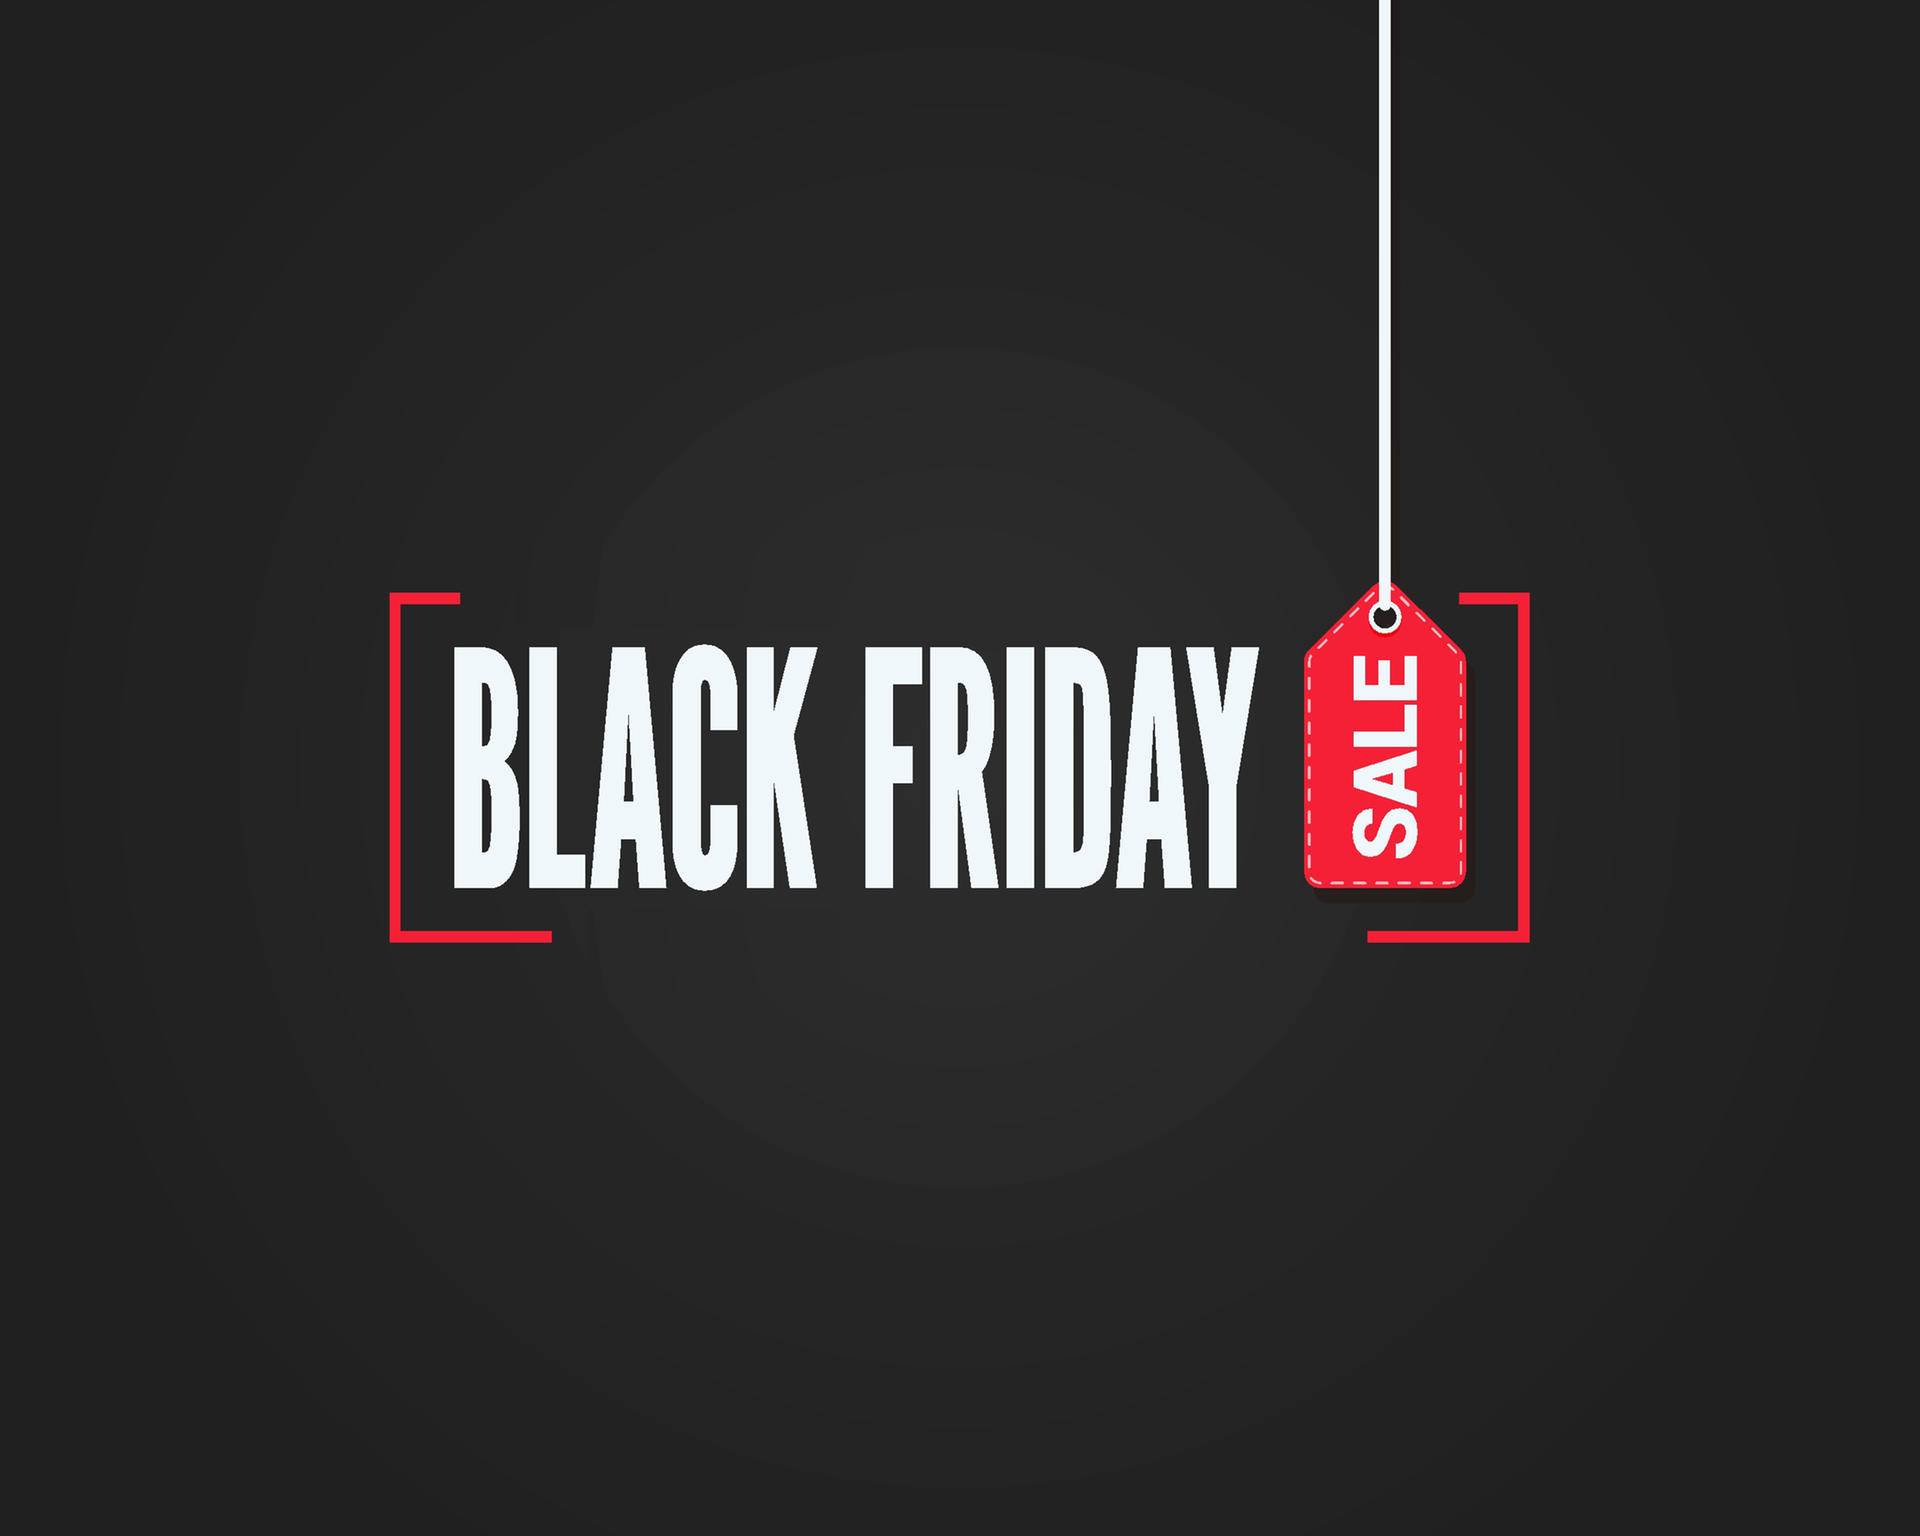 Black Friday Specials Black Friday Cyber Monday 2019 Bei Amazon